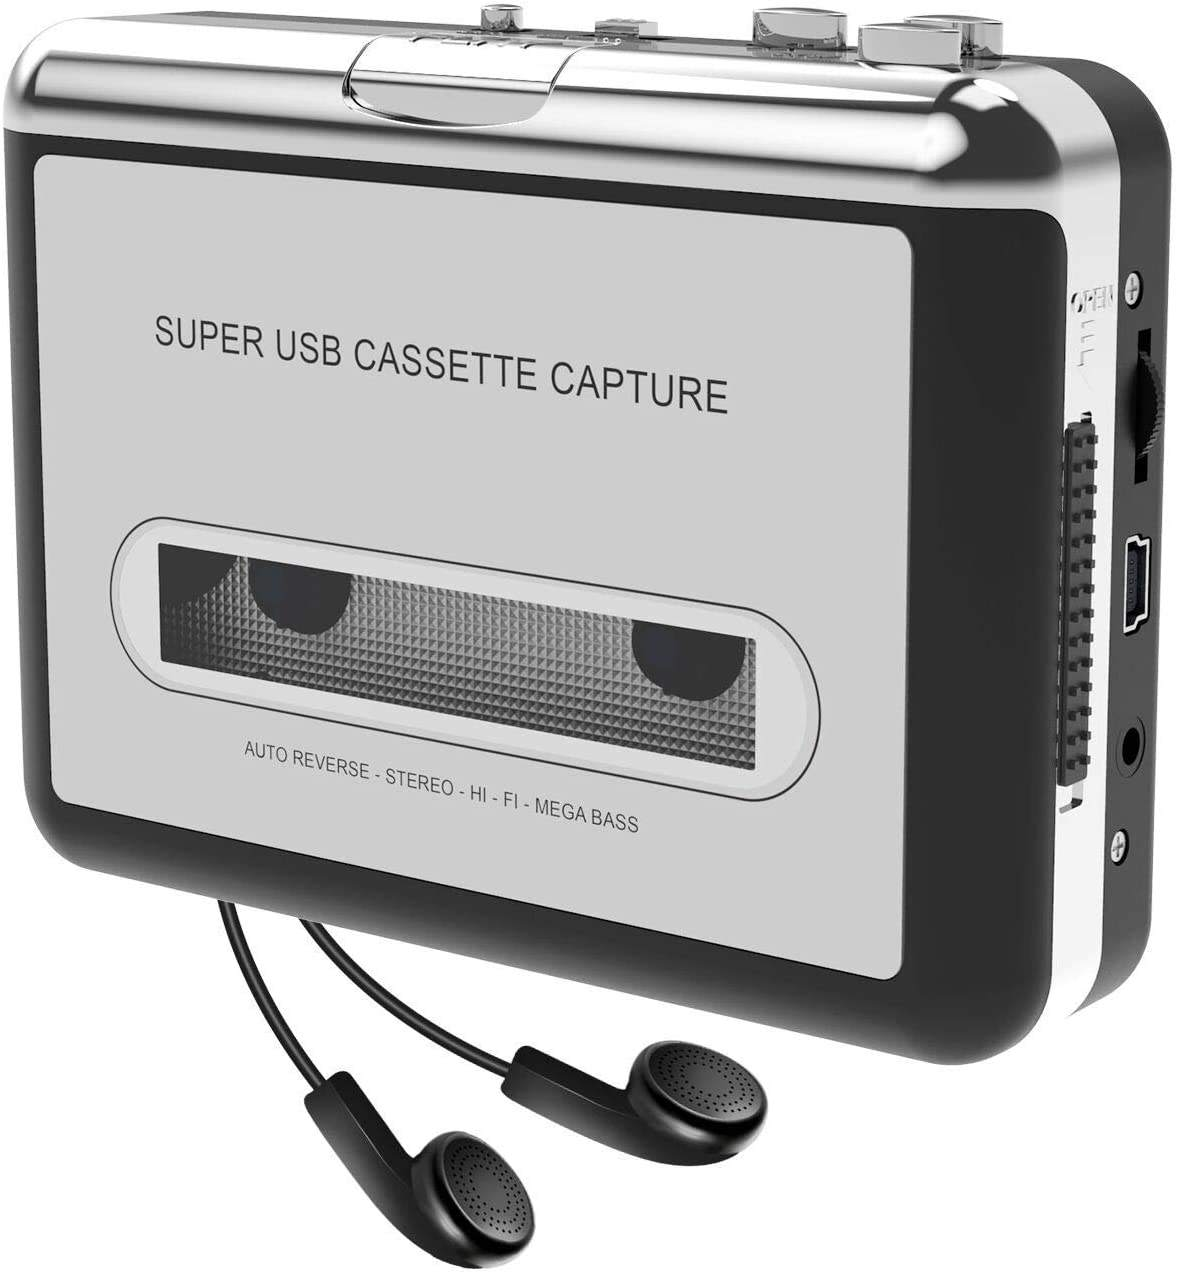 Convertisseur USB pour Mini Cassette MP3 CD, dispositif à capture, alimenté par batterie ou par USB, fonctionne comme un baladeur